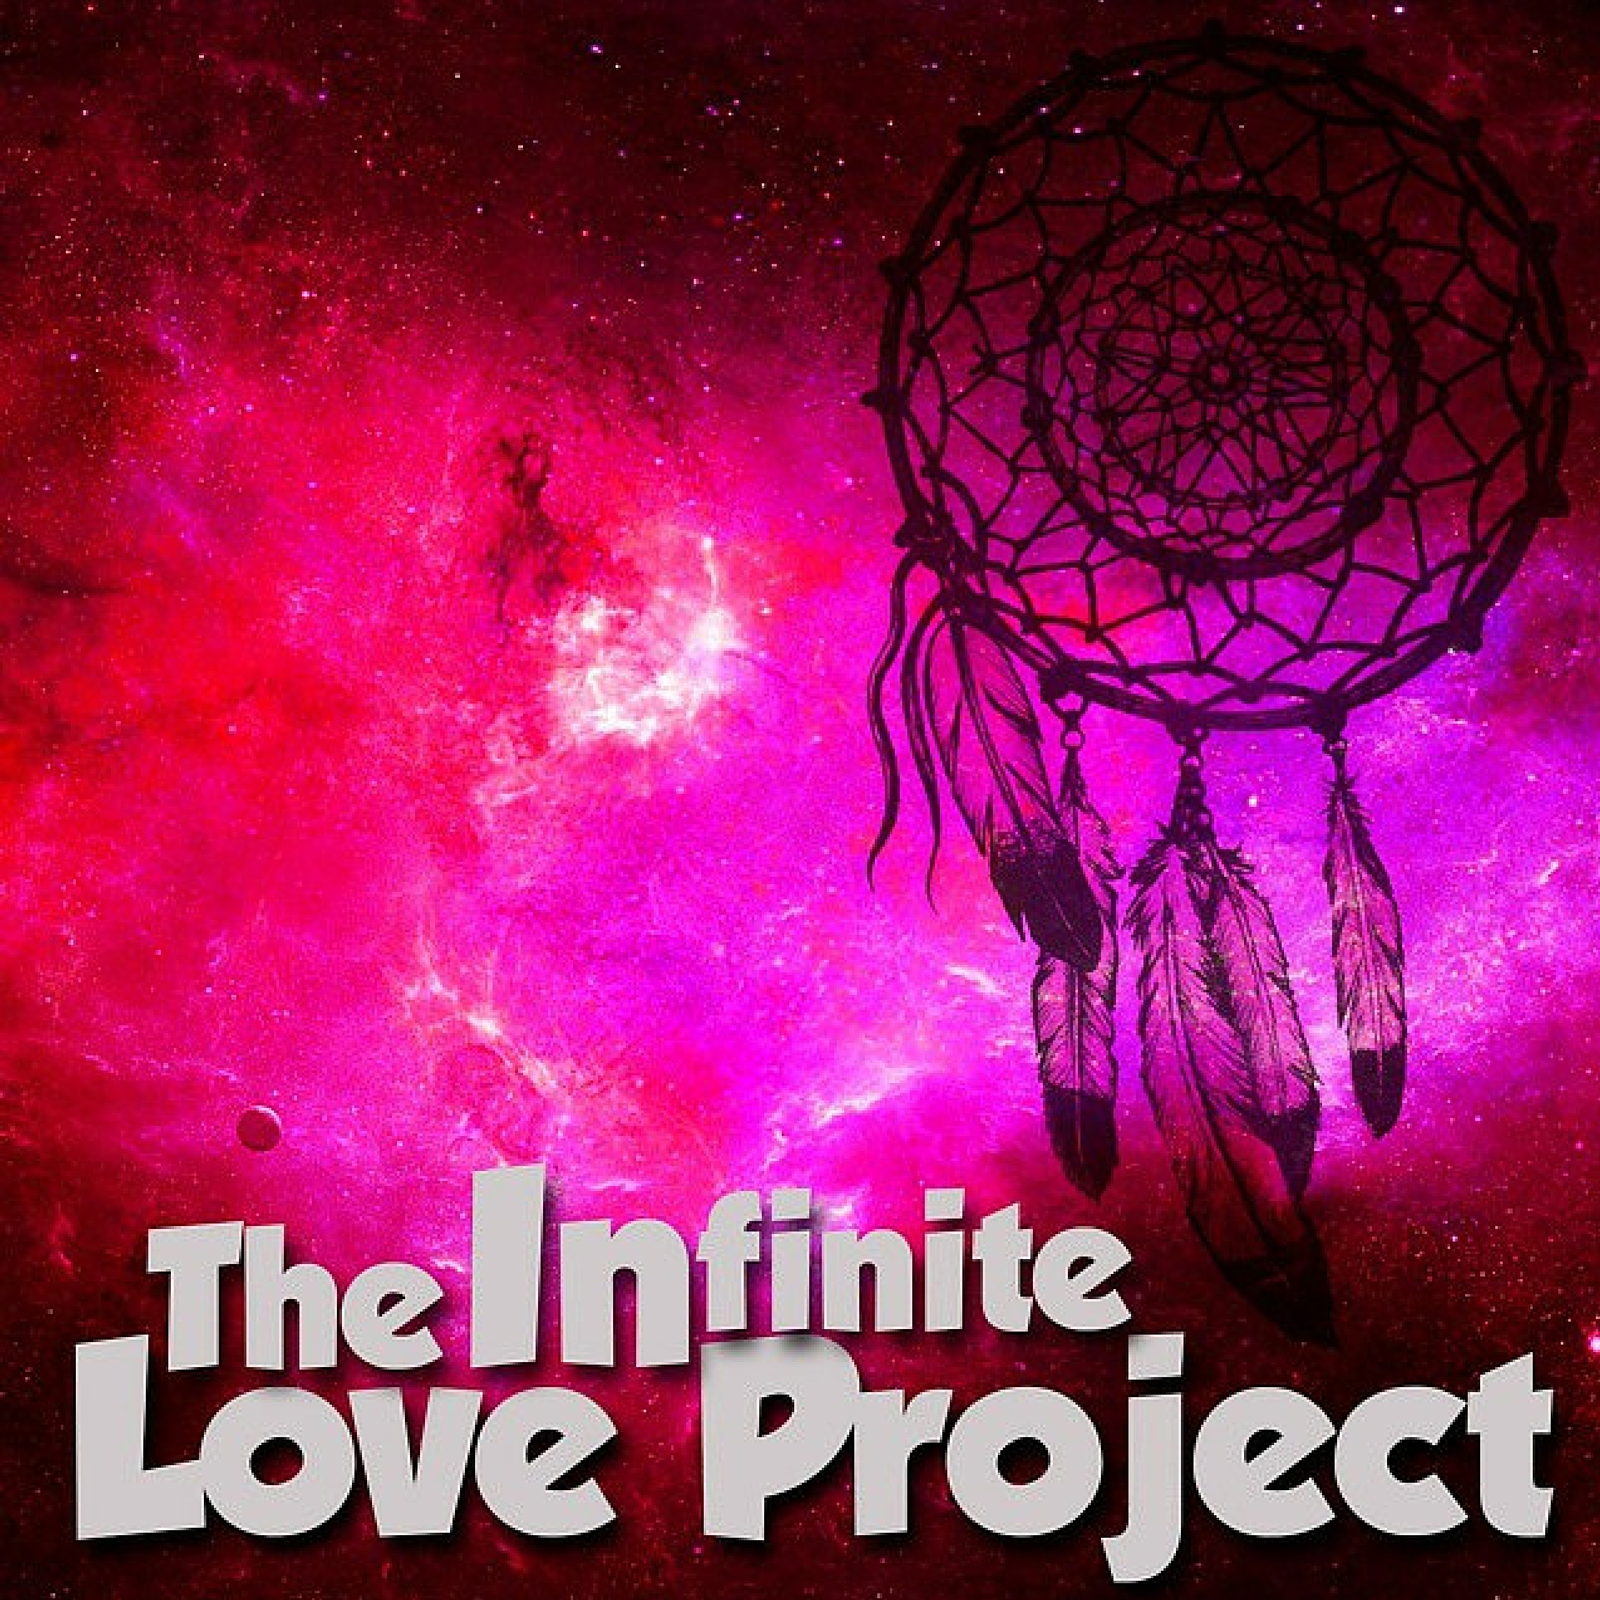 https://www.imoveilive.com/wp-content/uploads/2016/06/Infinite_Love_Project_CD.jpg